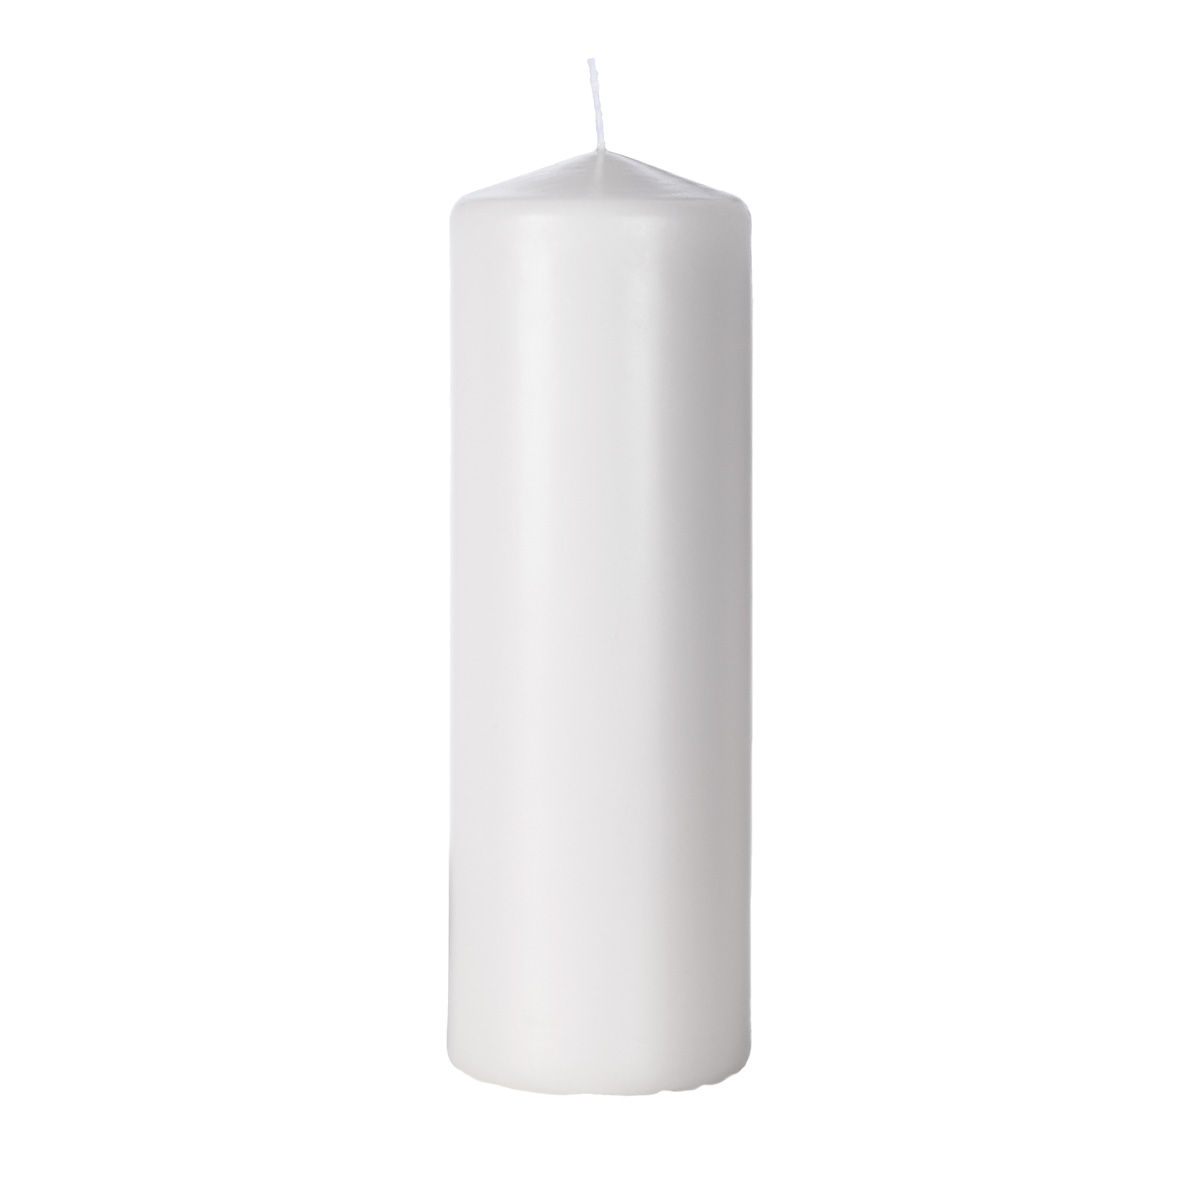 3x9 Unscented Pure White Pillar Candle